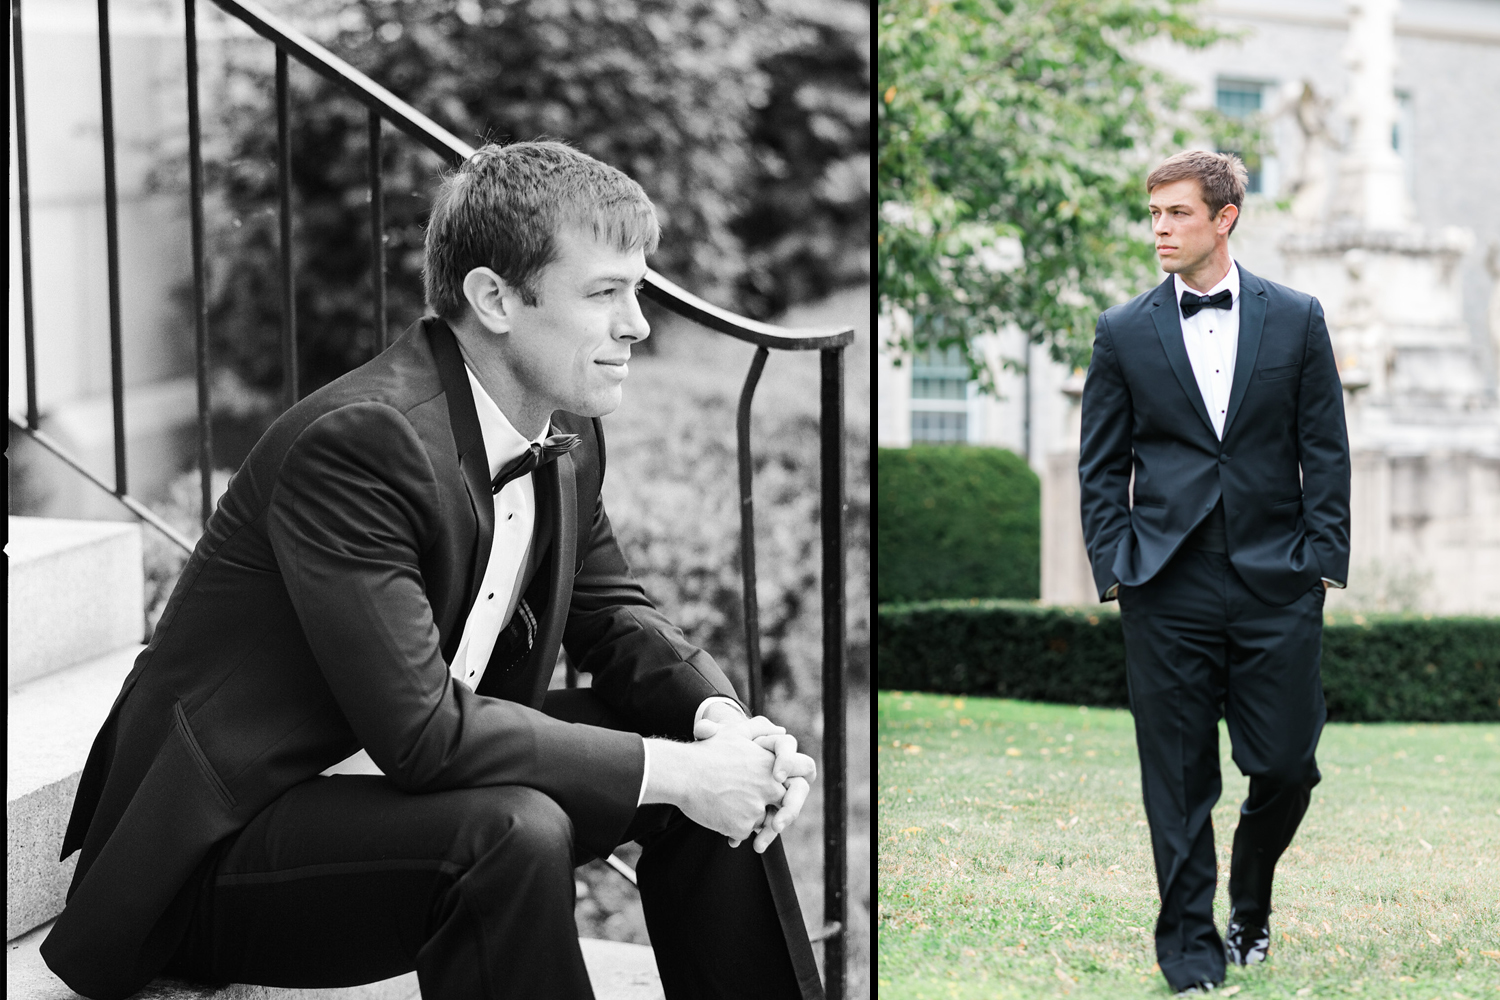 image of groom in tuxedo at US Naval Academy